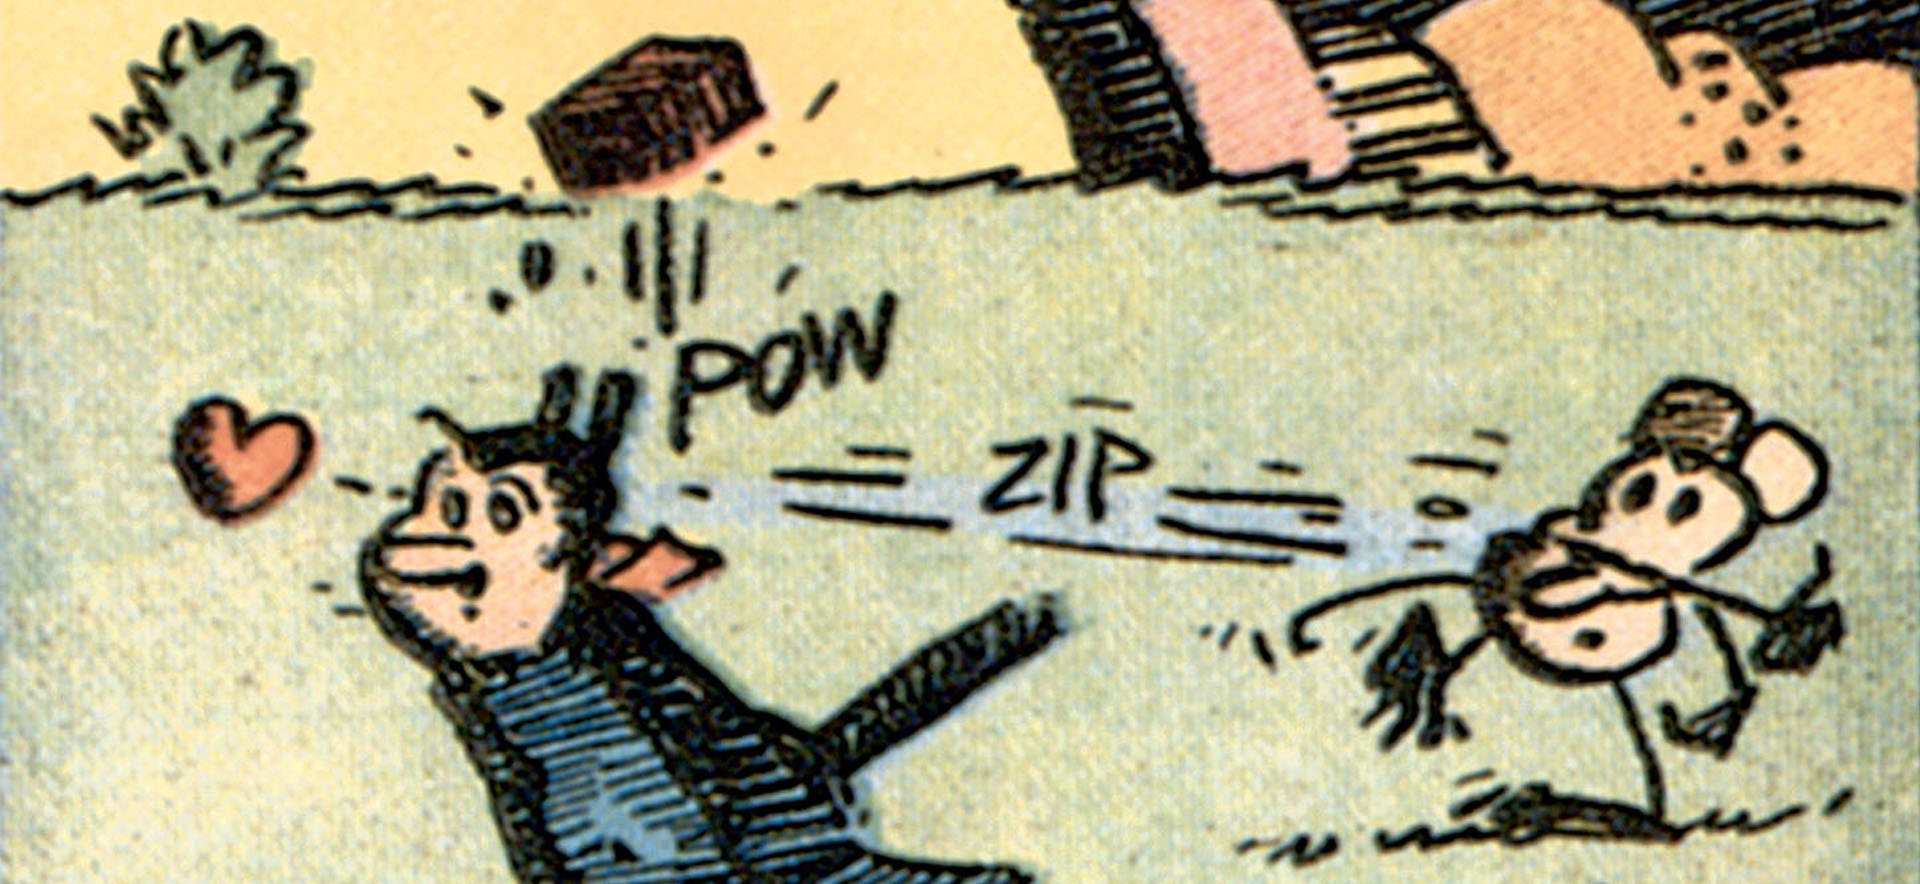 Also not name of george herrimans comic strip the excellent